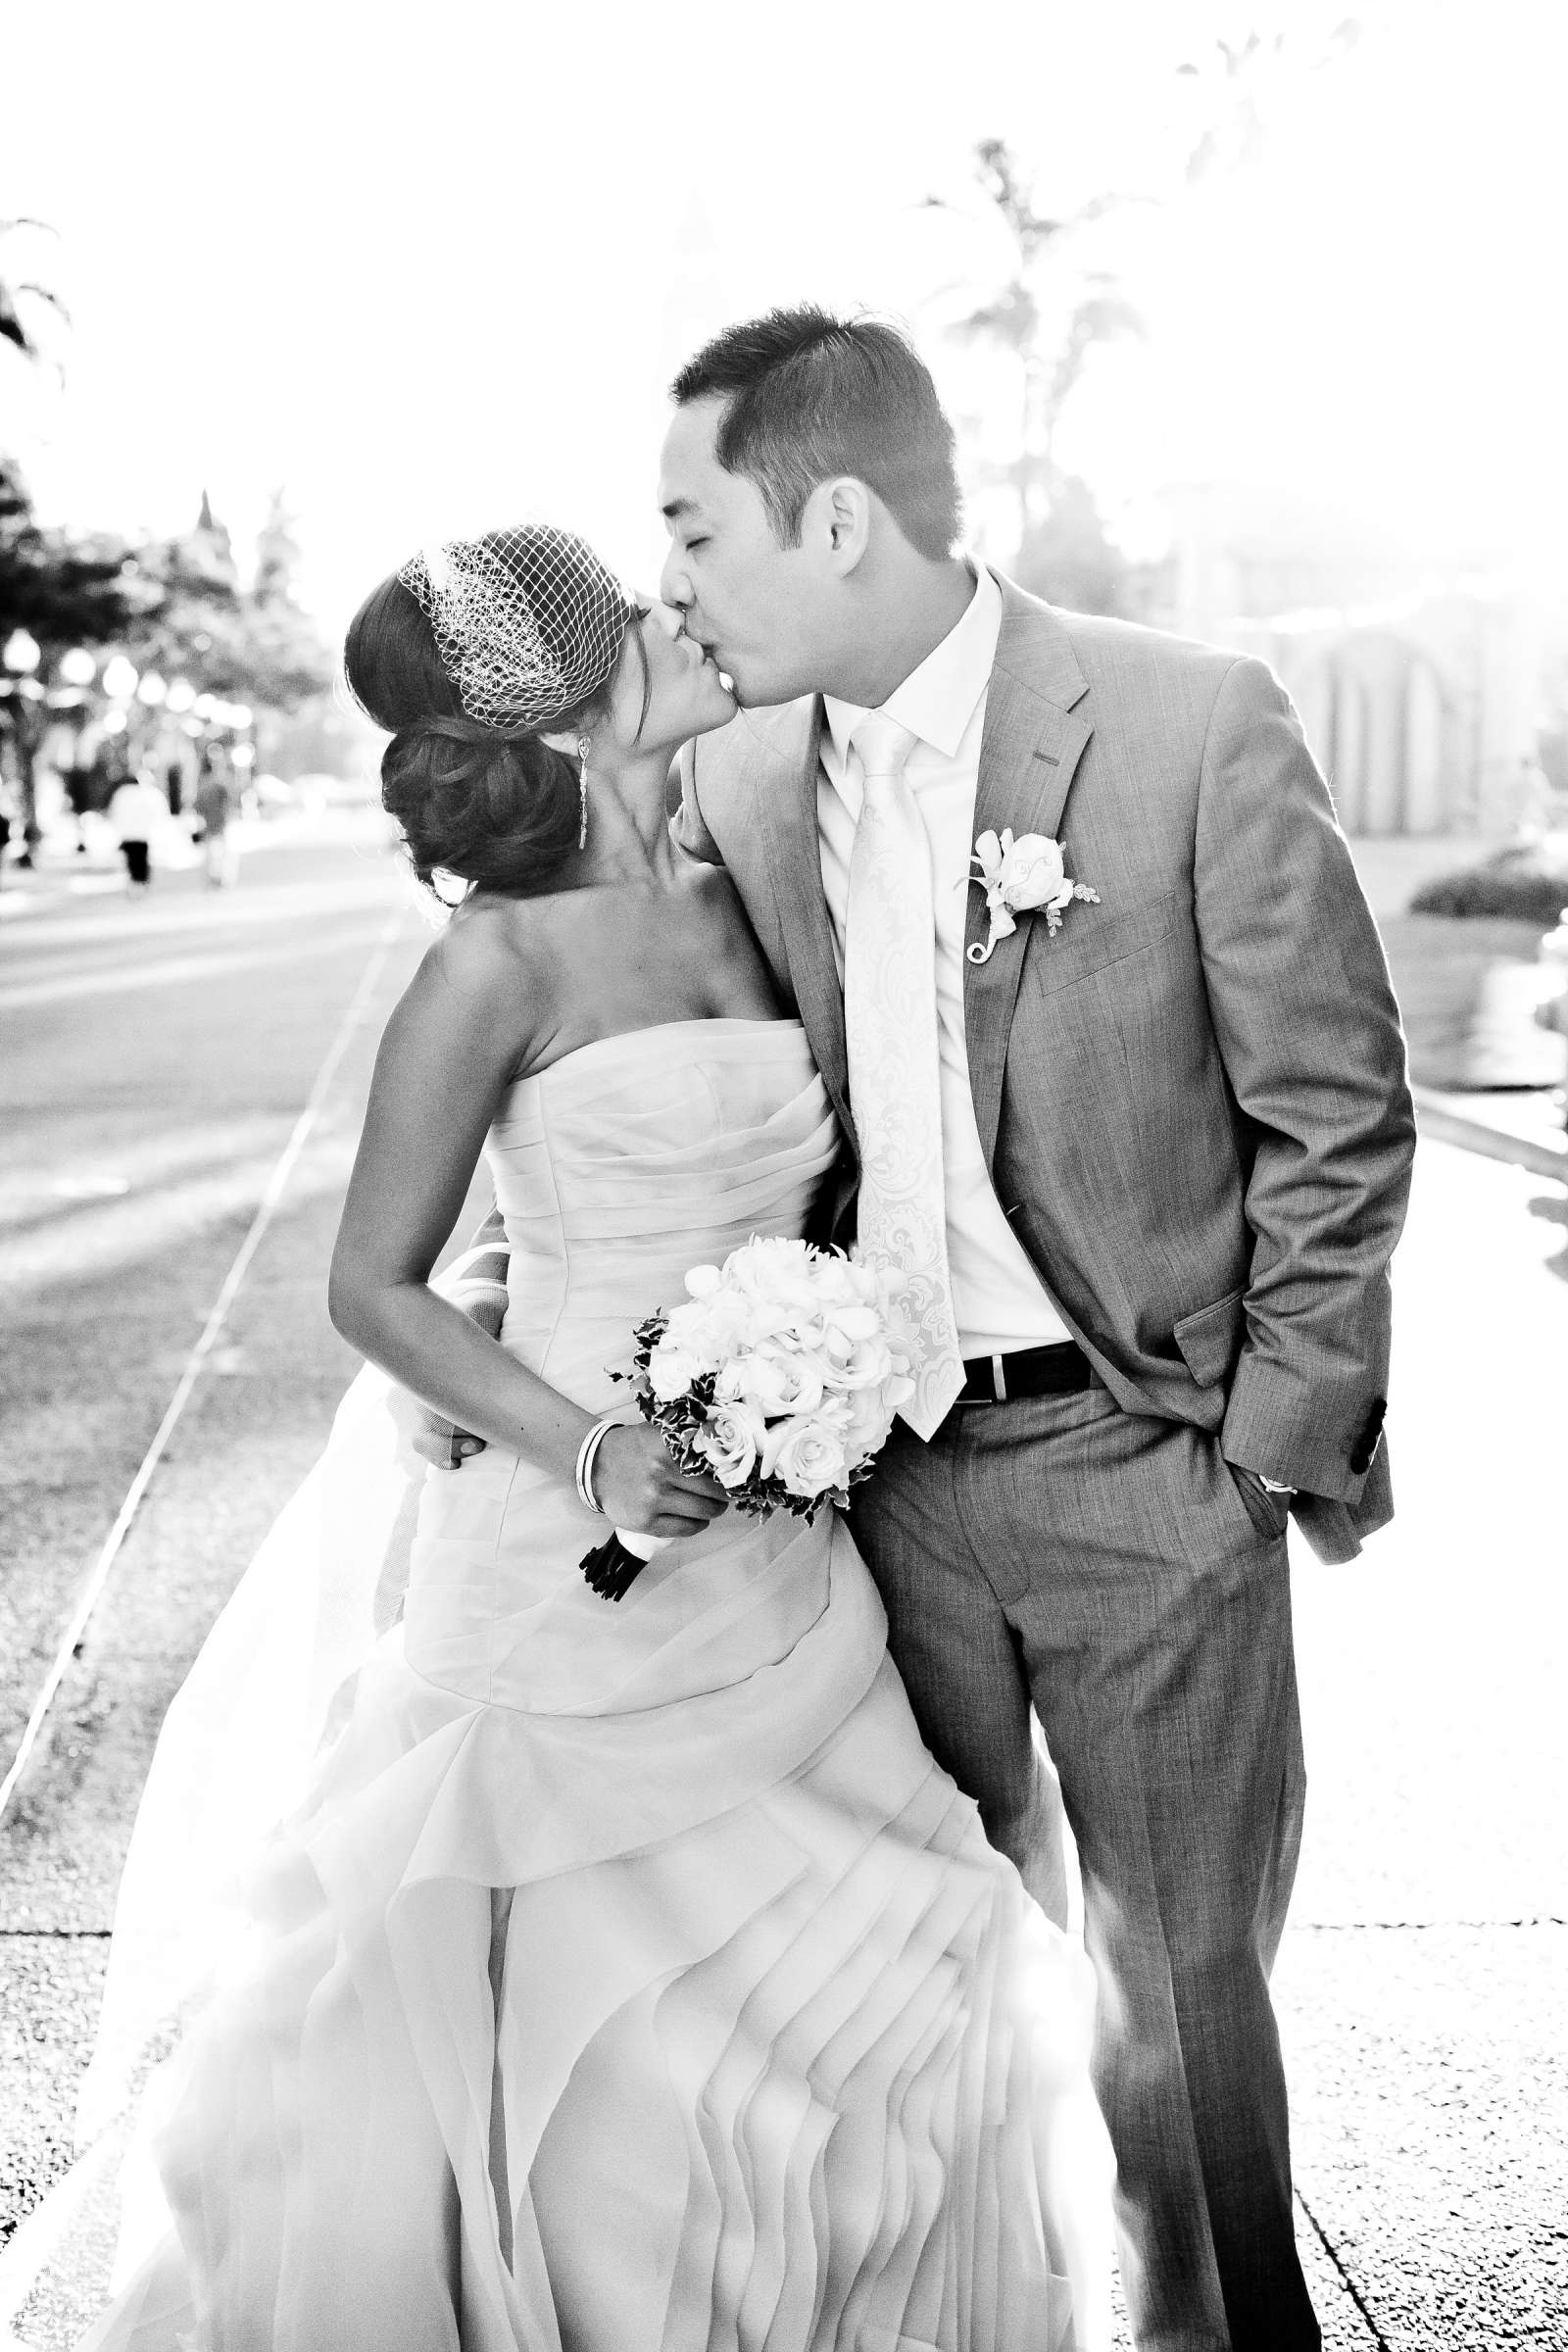 Wedding, Sandy and Doan Wedding Photo #1 by True Photography